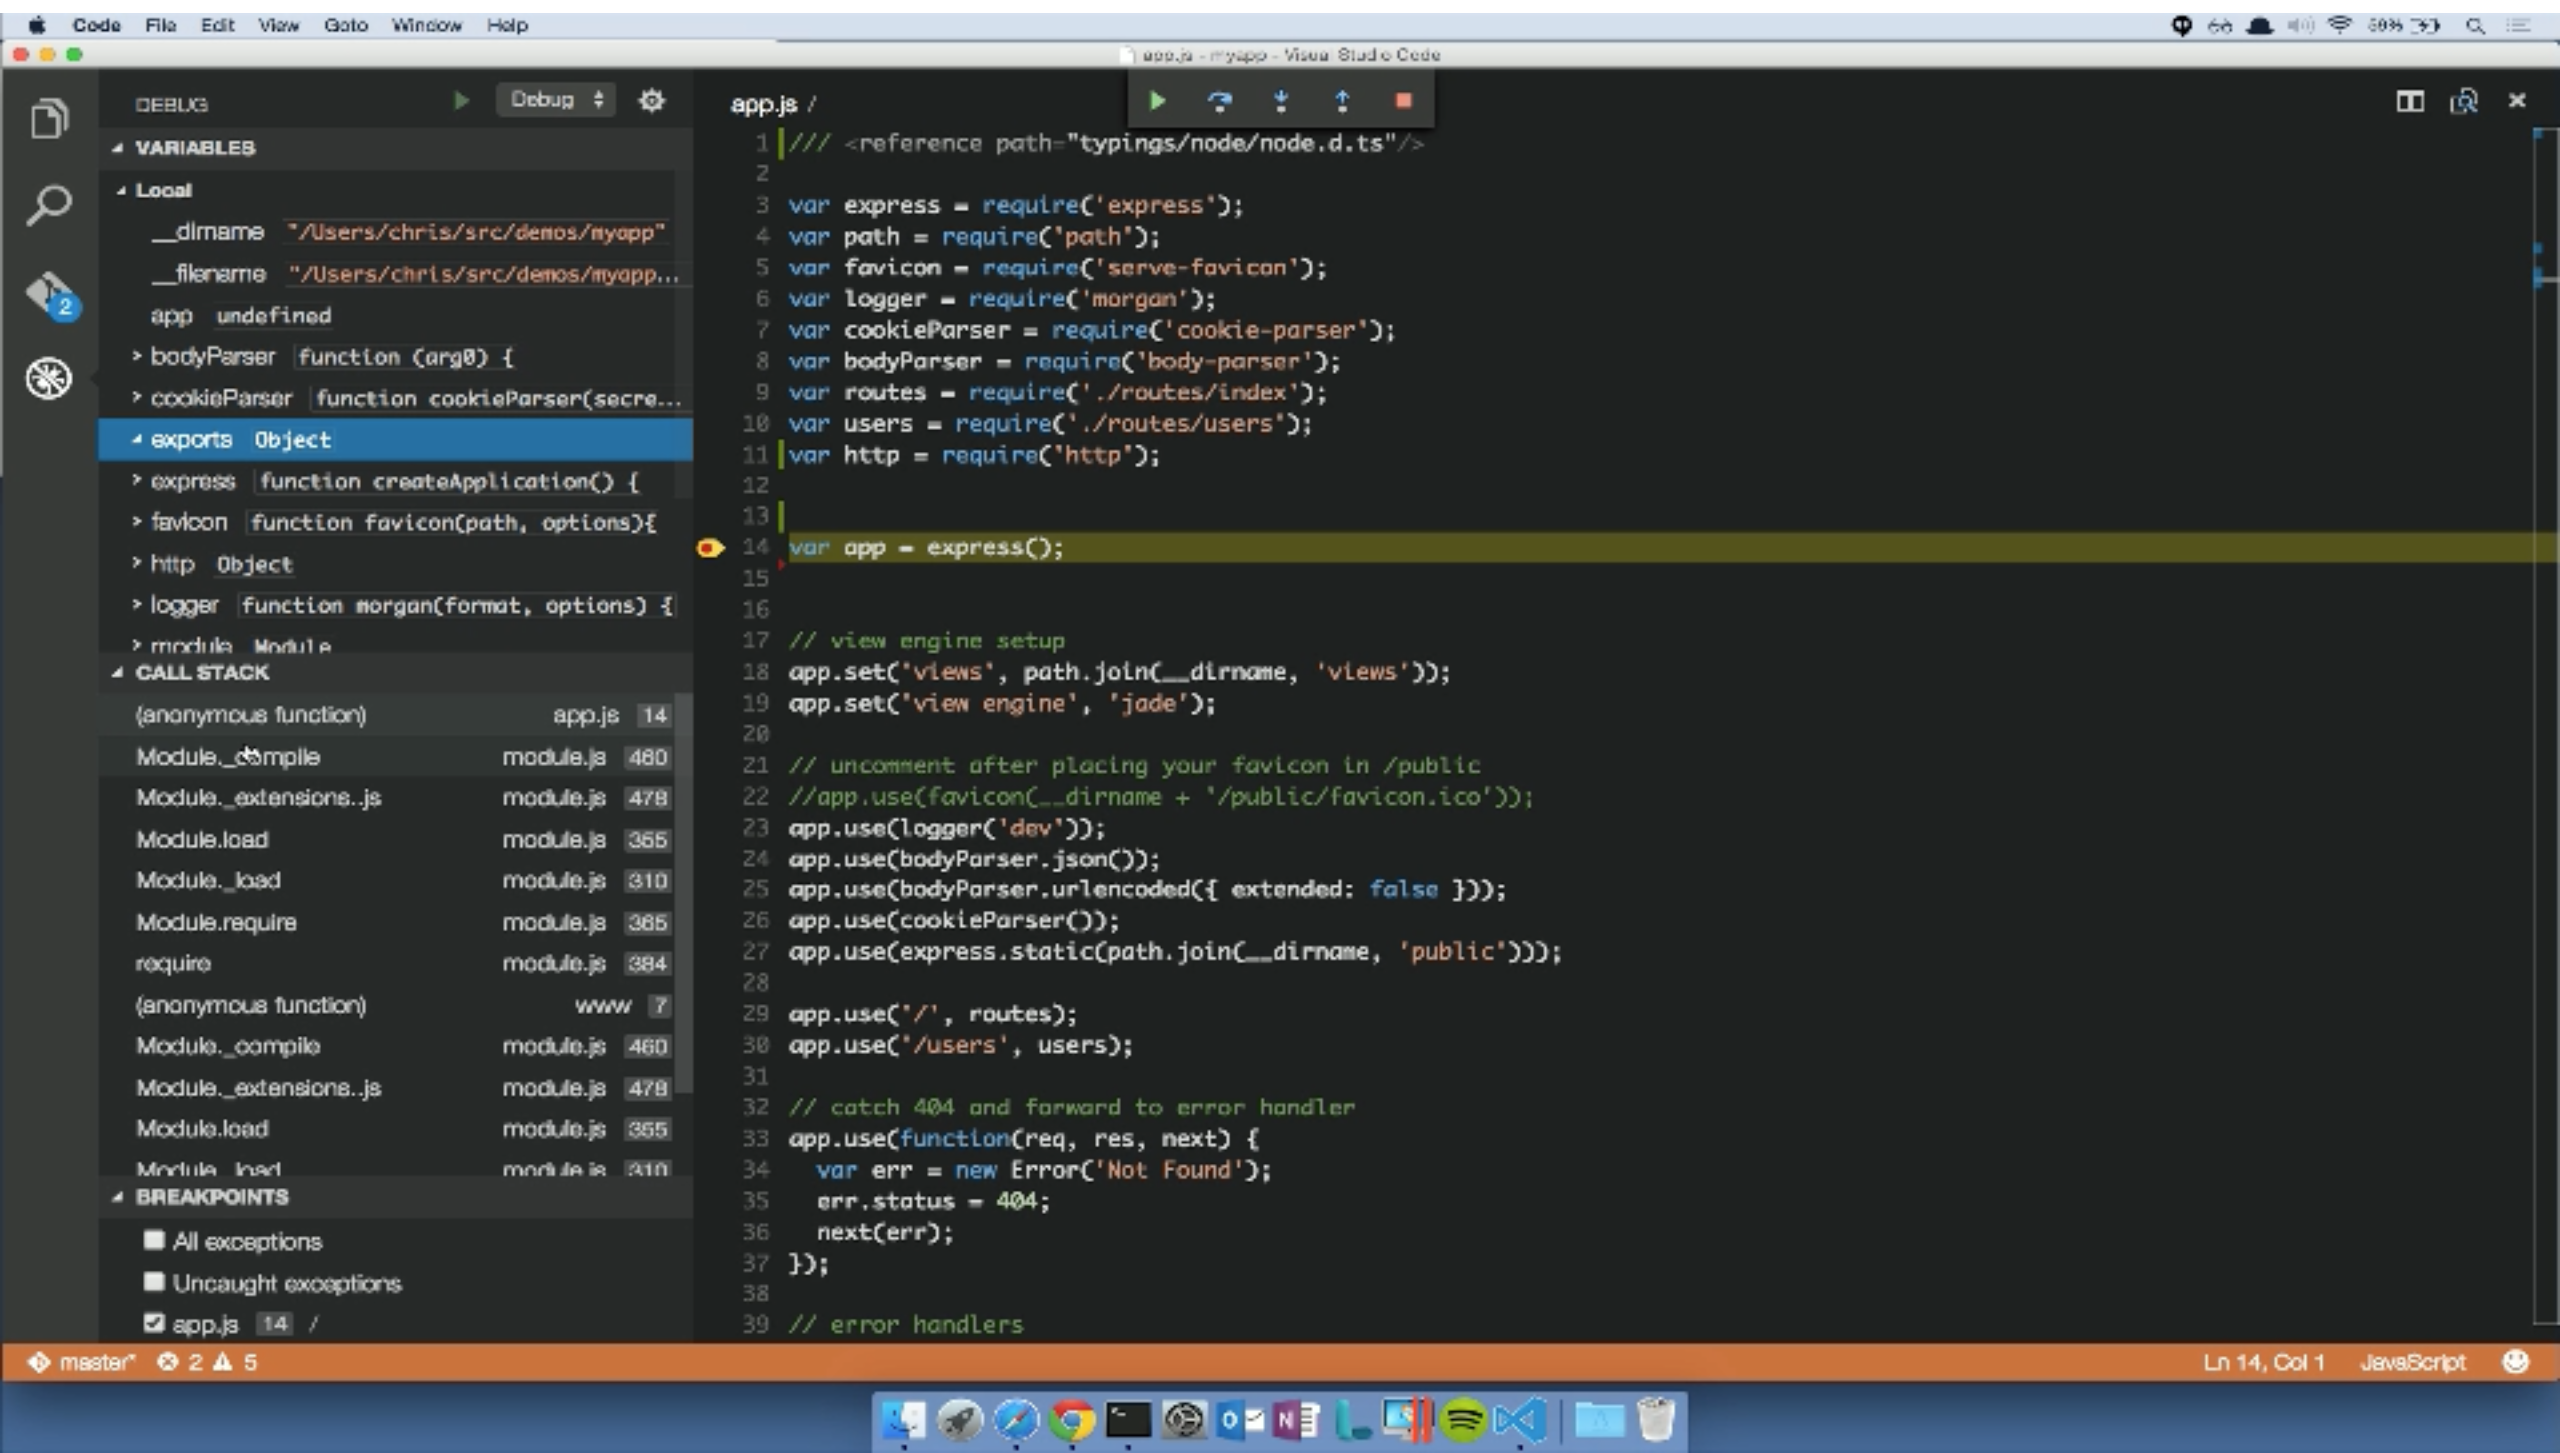 Visual Studio Code Demo - Visual+Studio+Code+Screen+Shot+2.png